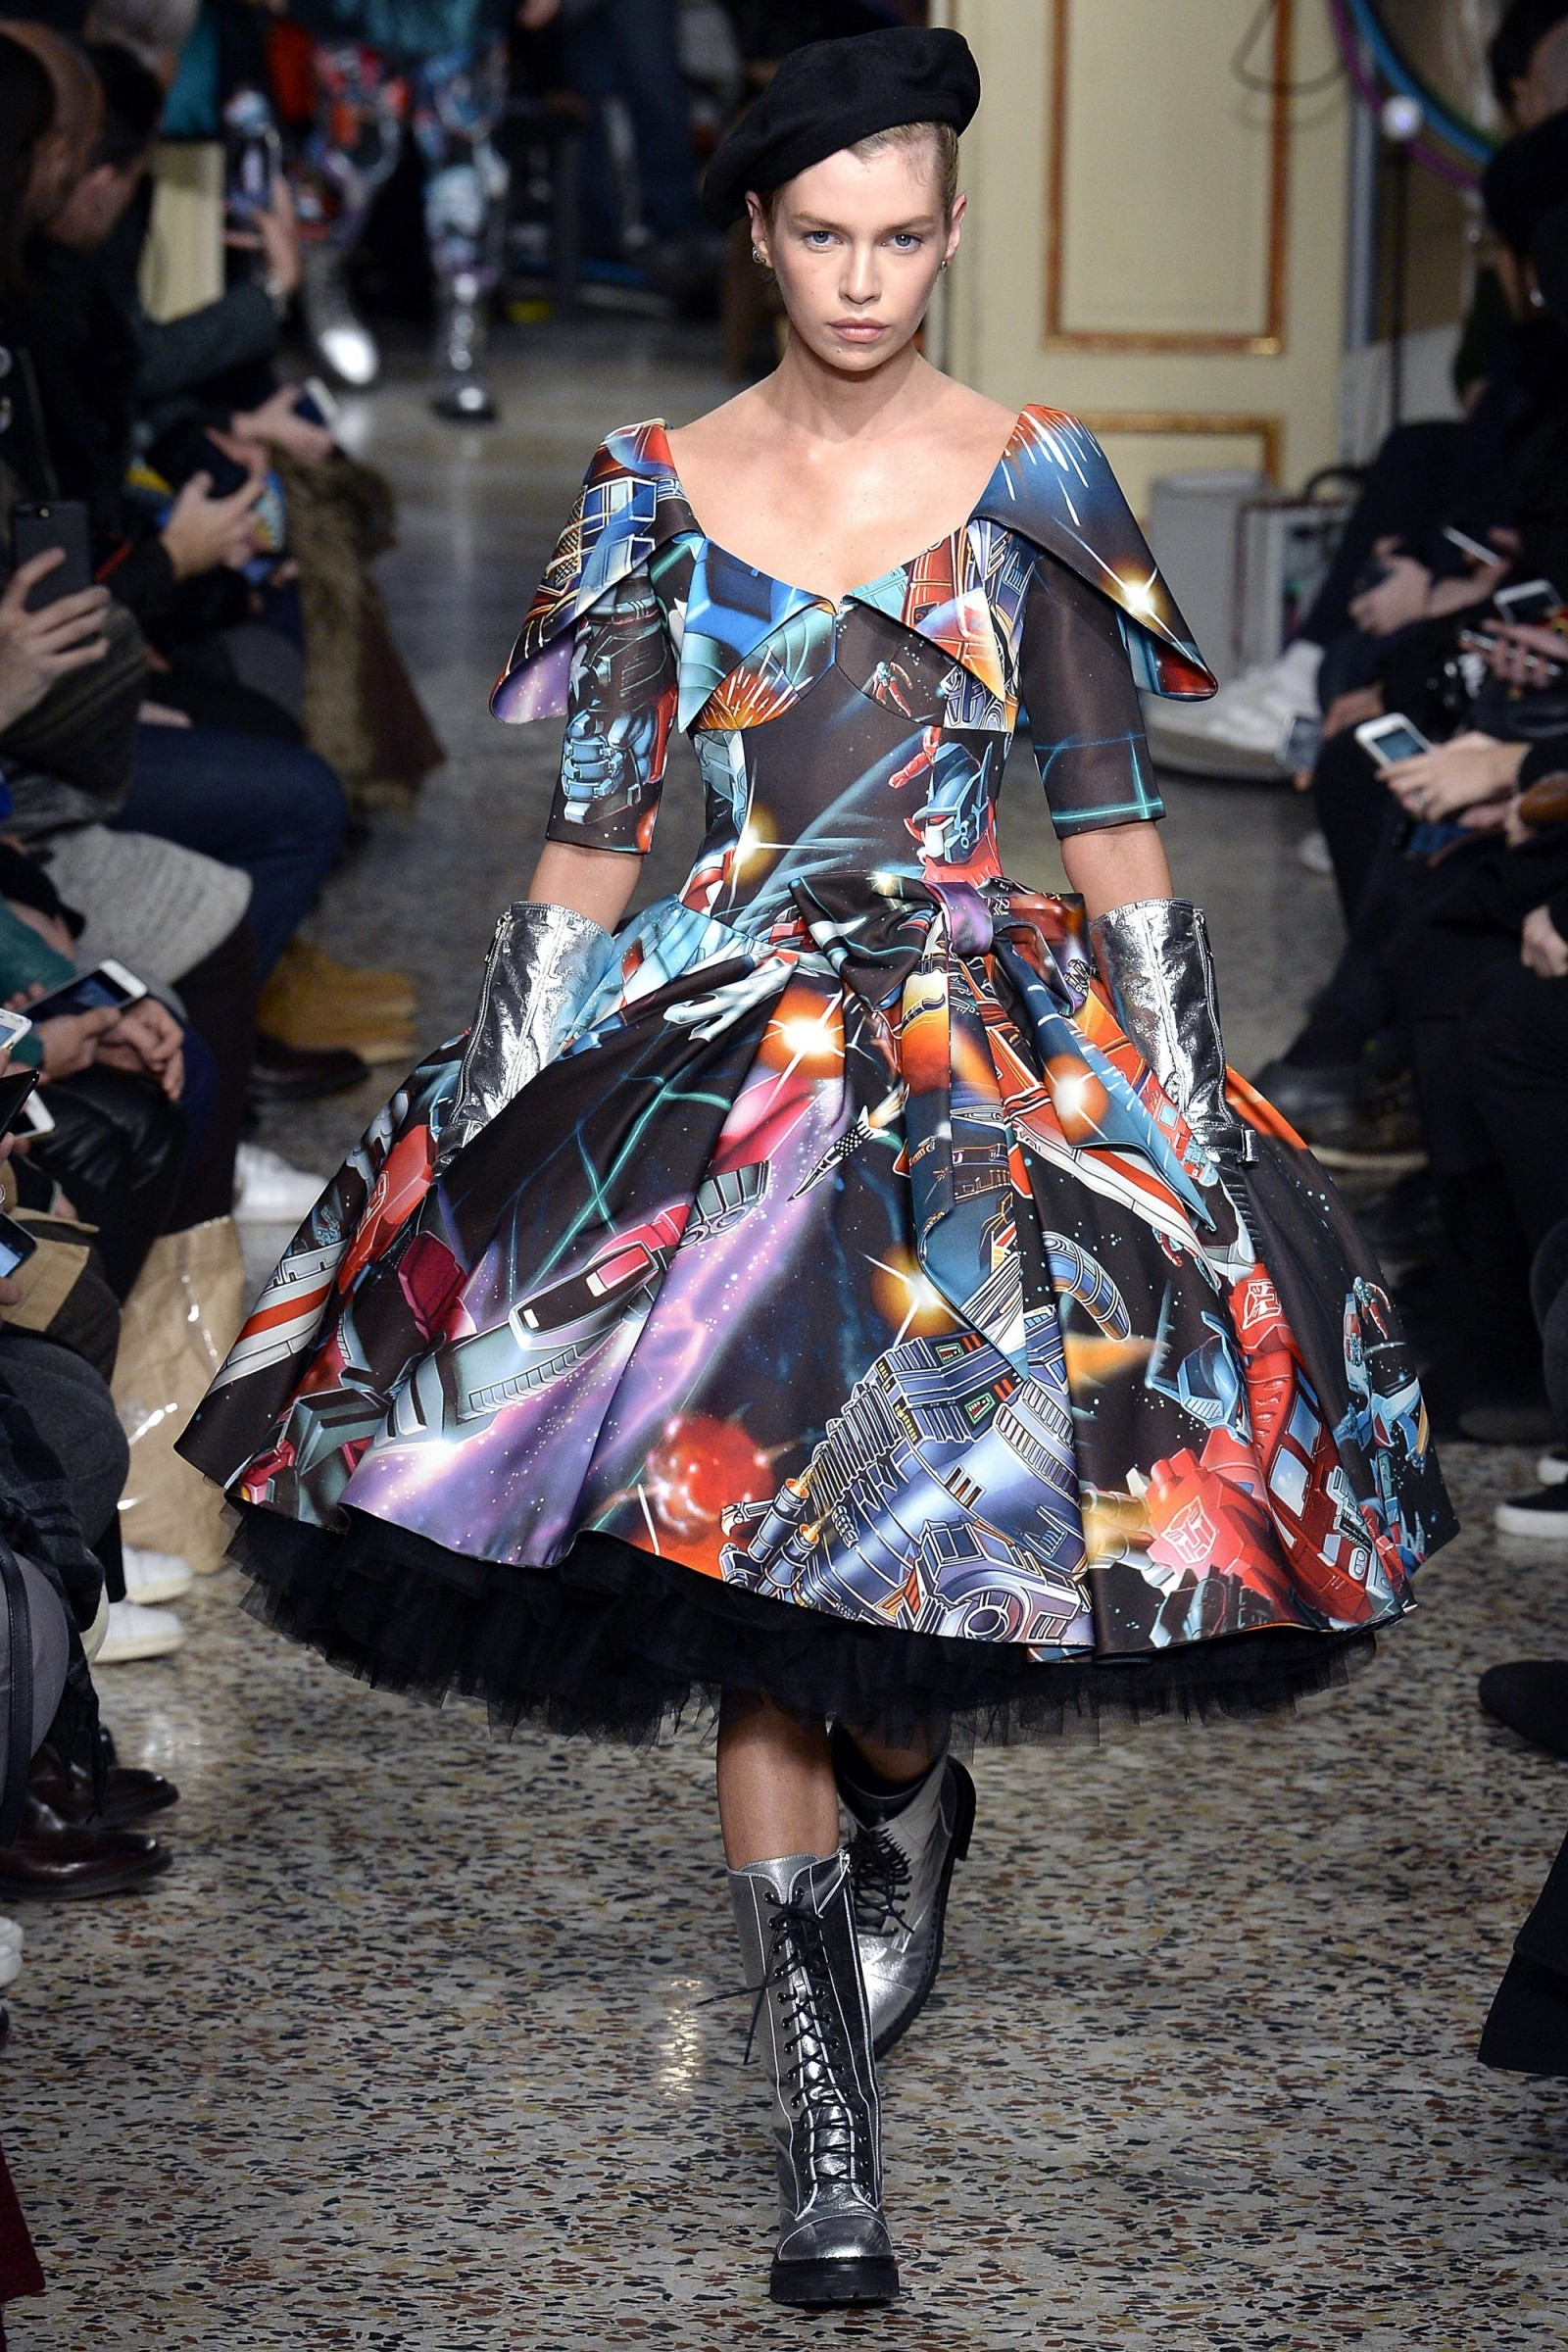 Transformers News: Transformers Art Featured in Moschino Milan Fashion Show Collection